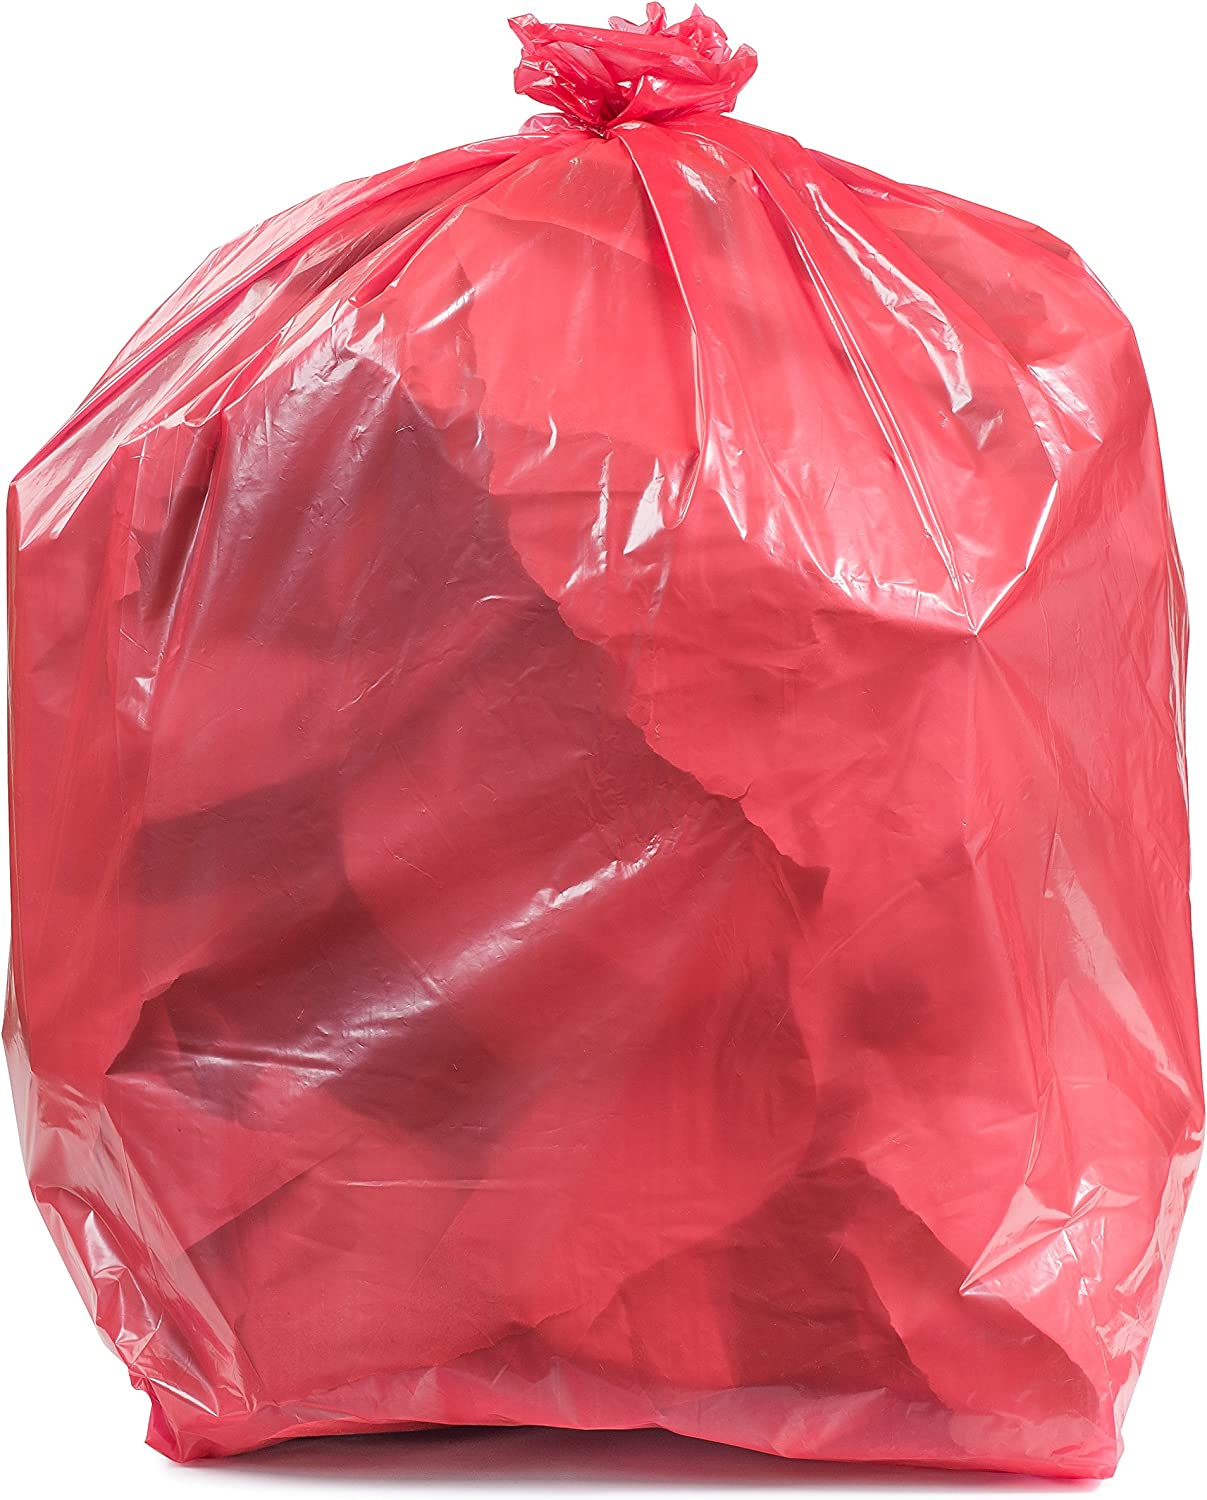 "Plasticplace T55120RD 55-60 Gallon Trash Bags │ 1.2 Mil │ Red Heavy Duty Garbage Can Liners │ 38"" x 58"" (50 Count), 250 (Pack of 1)"